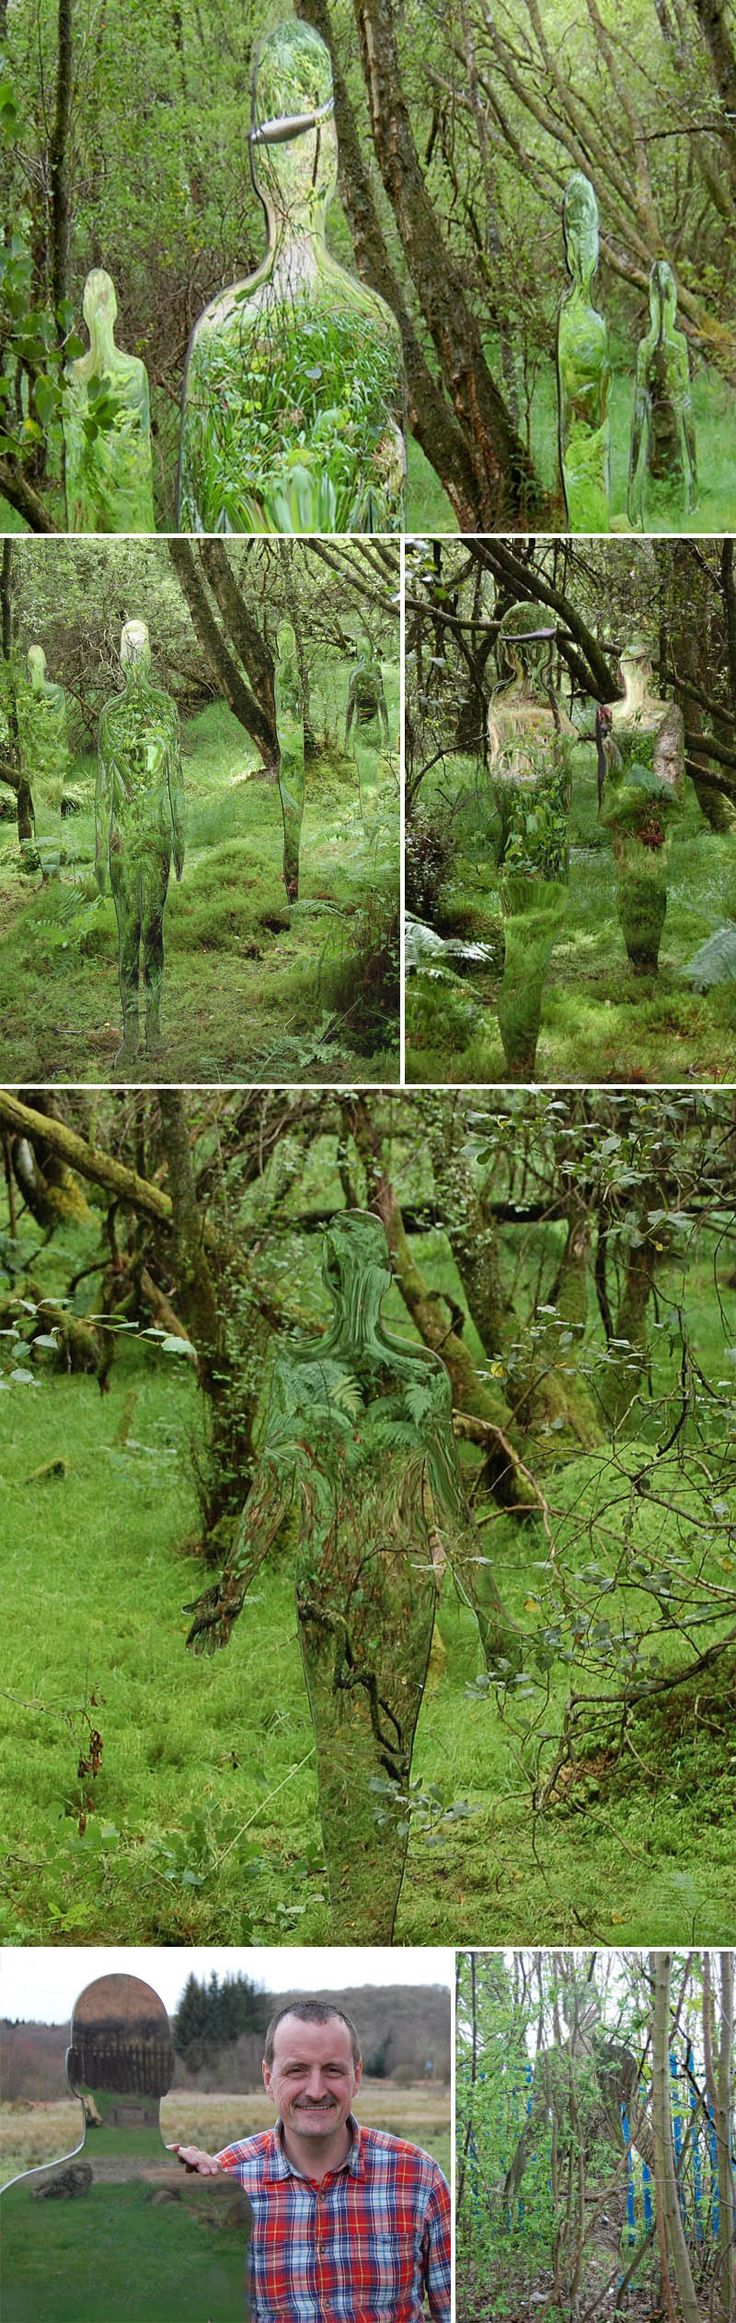 Scottish sculptor Rob Mulholland has created this art installation at the David Marshall Lodge in Scotland titled Vestige. Mulholland's idea behind the installation seems twofold: to create a vestige of the people who once occupied the land until following World War I, when they were re-located while forests were planted to generate timber and to make people reflect upon man's impact on the nature.